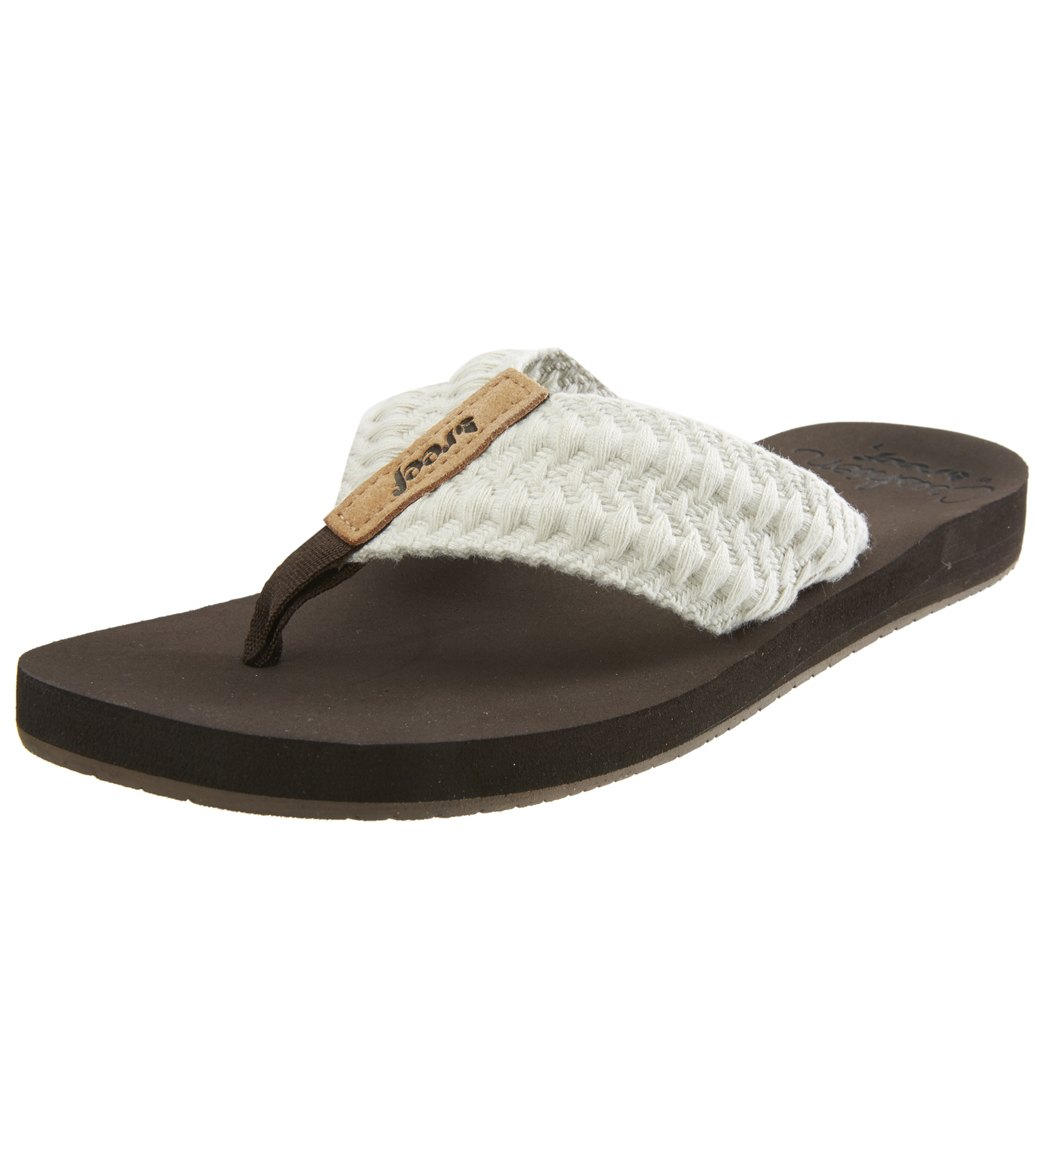 a9c529f1e40 Reef Women s Cushion Threads Flip Flop at SwimOutlet.com